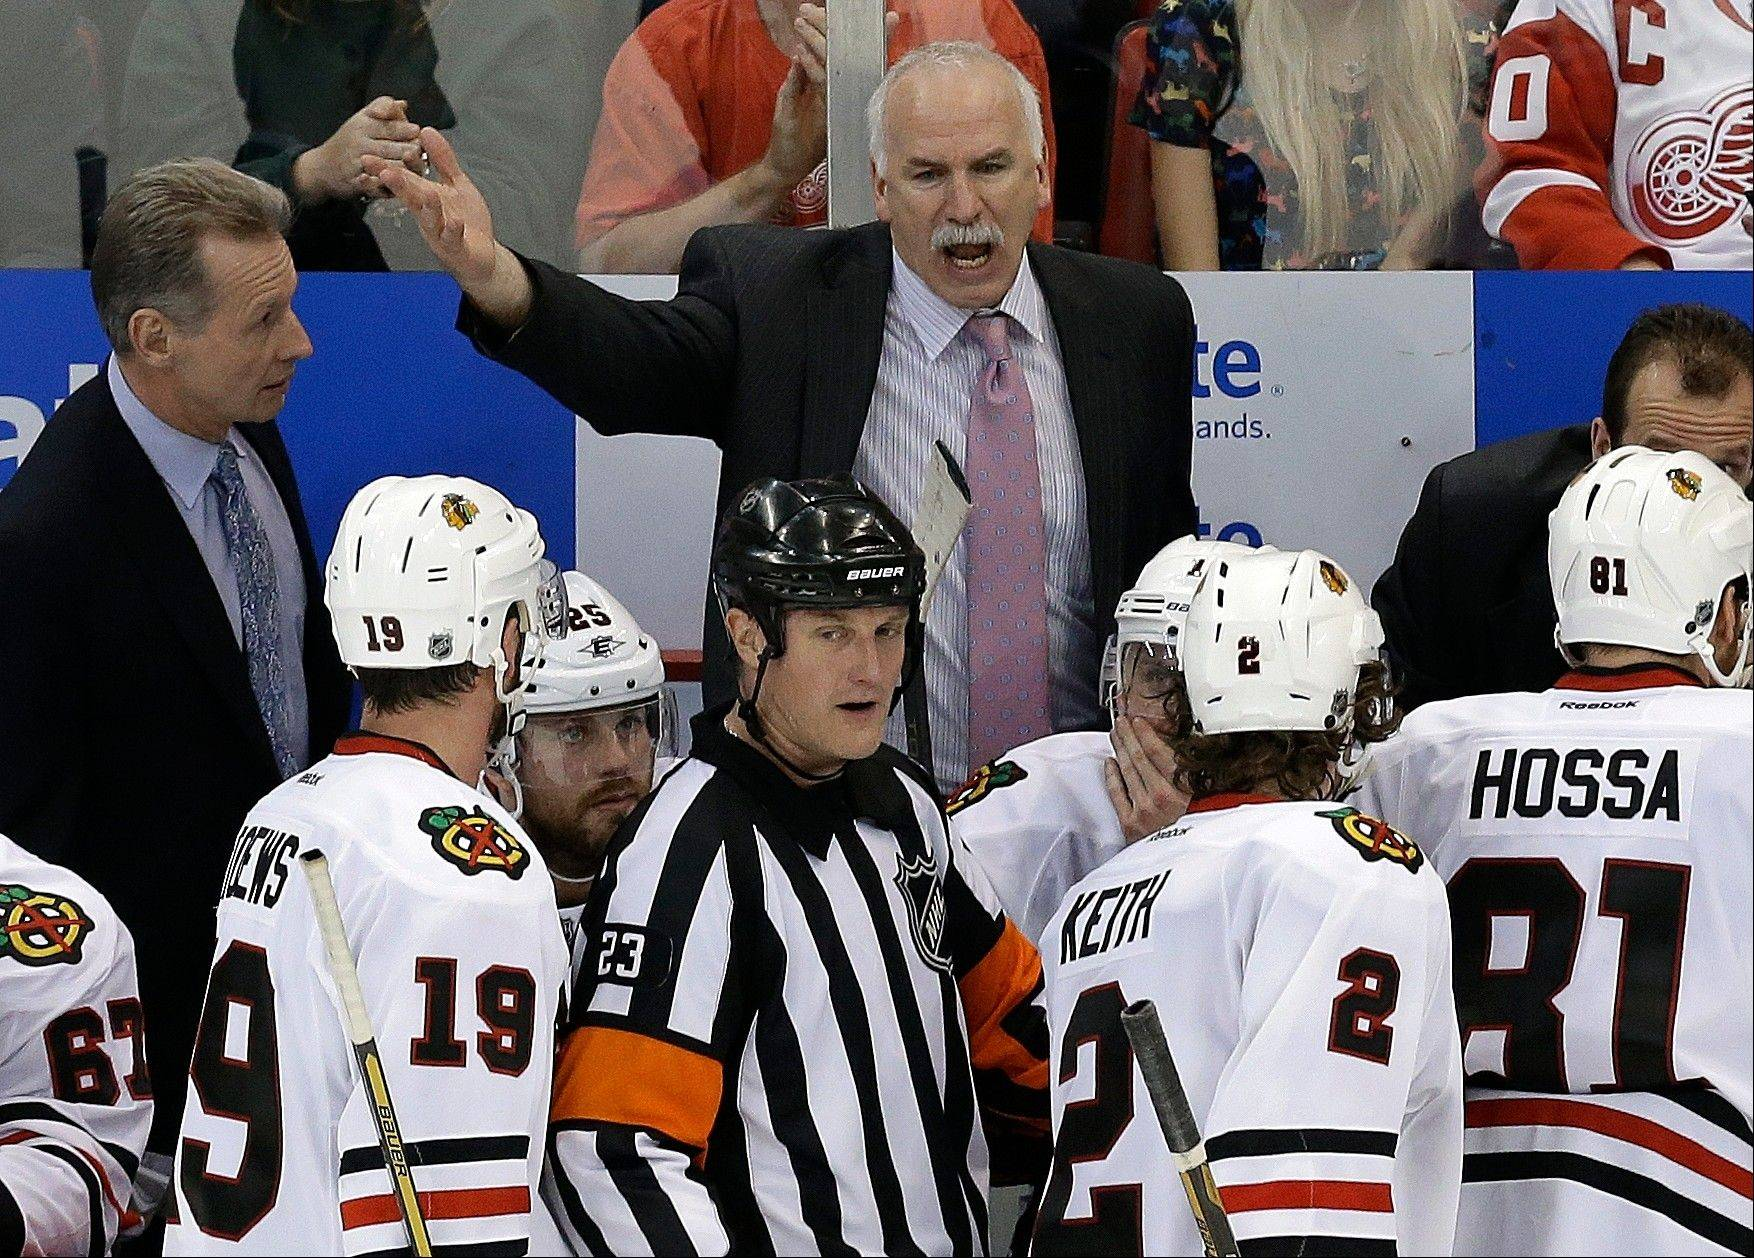 Blackhawks coach Joel Quenneville can only hope his team carries its play from Game 3 into Thursday�s crucial Game 4 at Detroit.